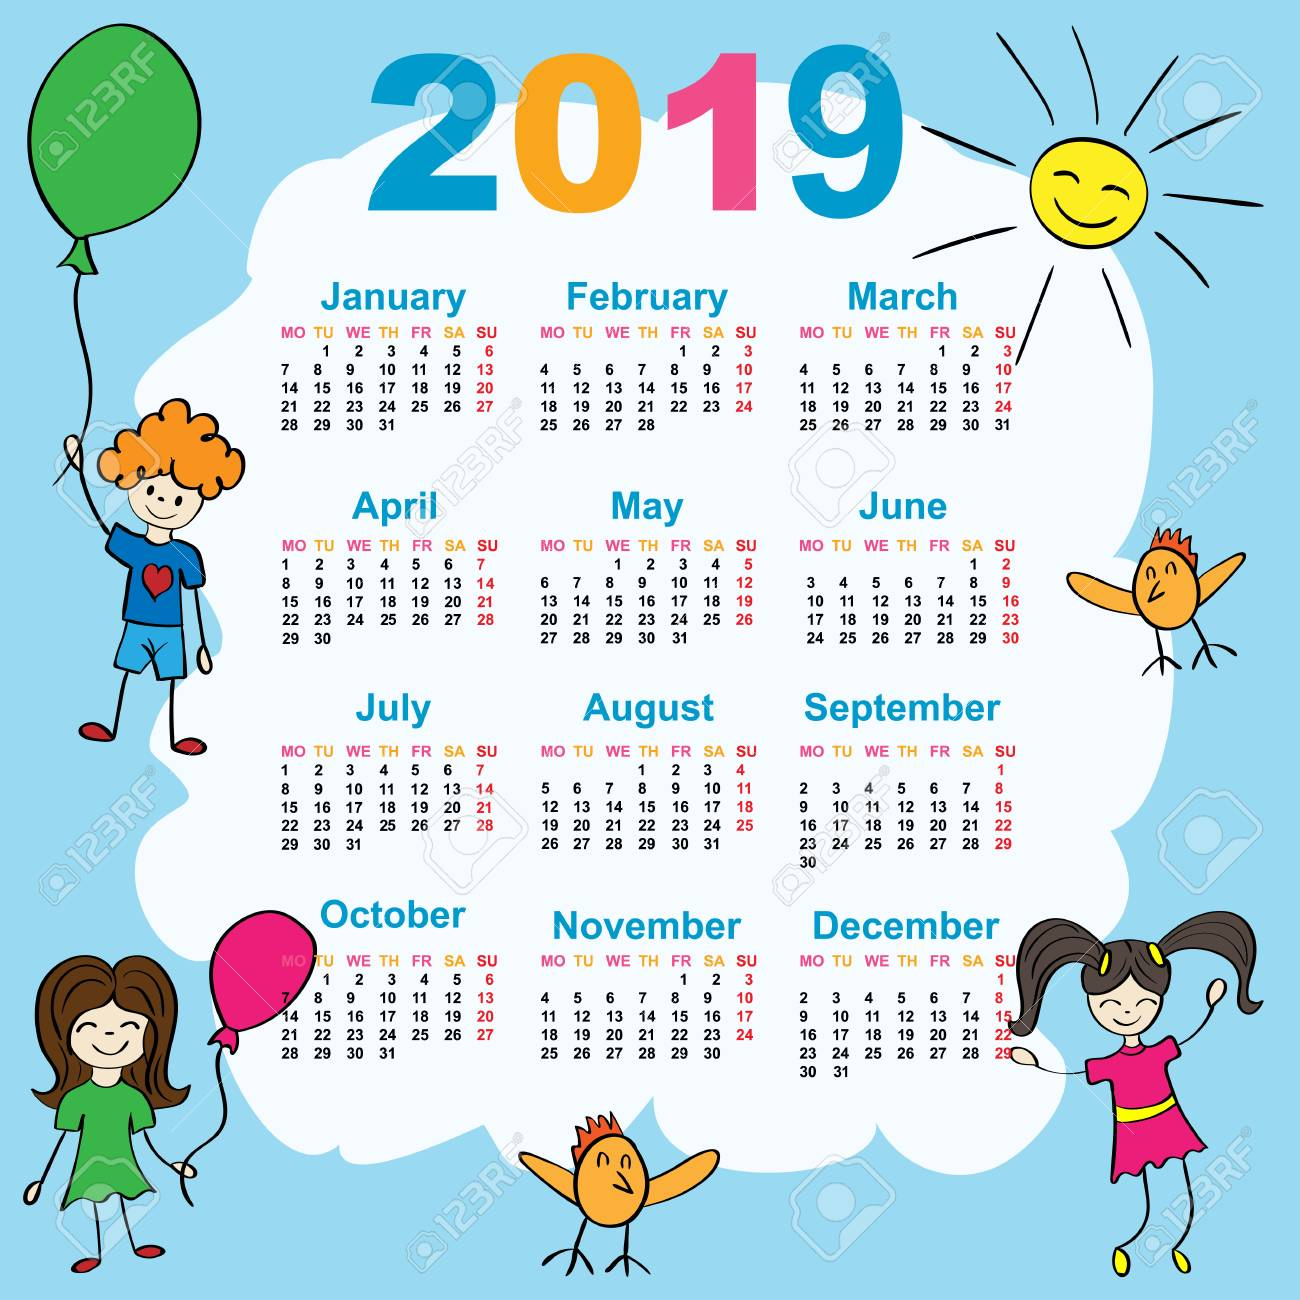 Good New Year. 2019. Date. For Your Design. Stock Photo